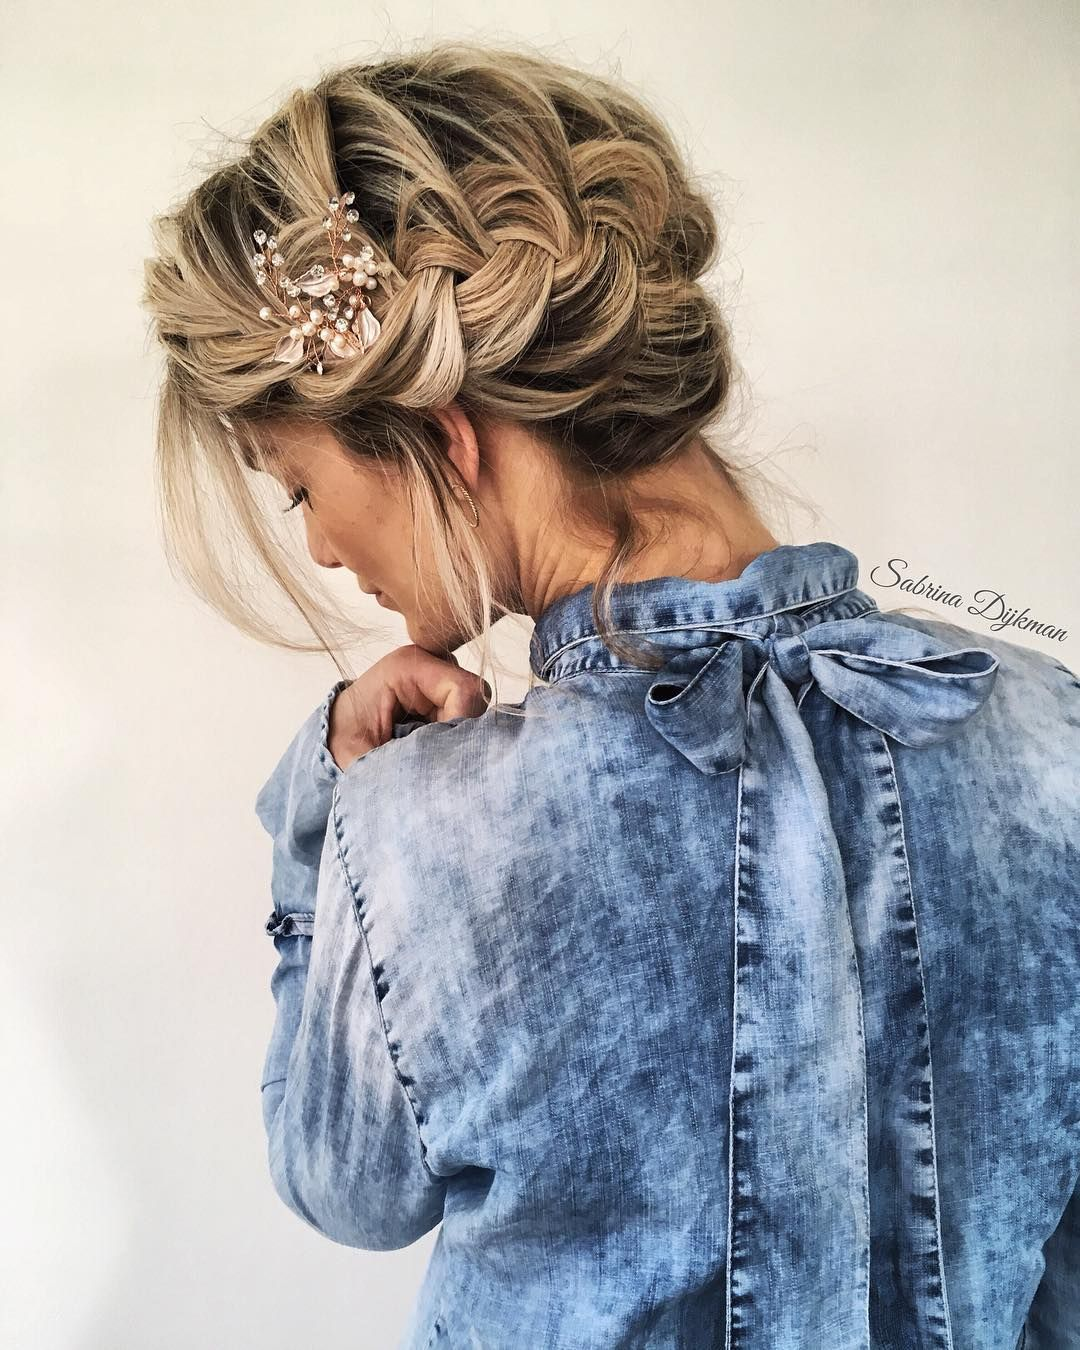 Pretty Braided Updo For Boho Bride - Fabmood | Wedding Colors ...